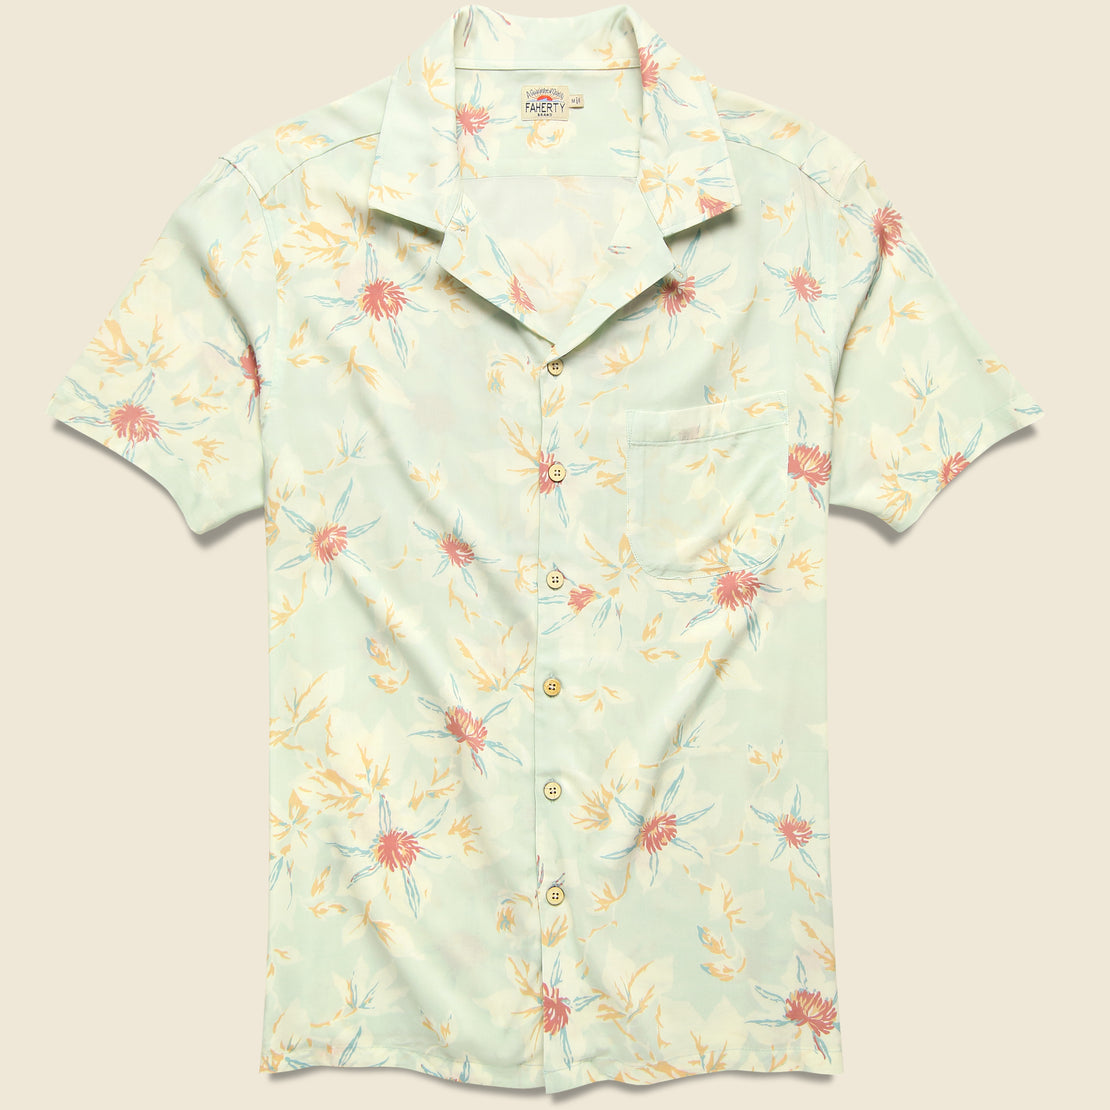 Faherty Kona Camp Shirt - Mint Floral